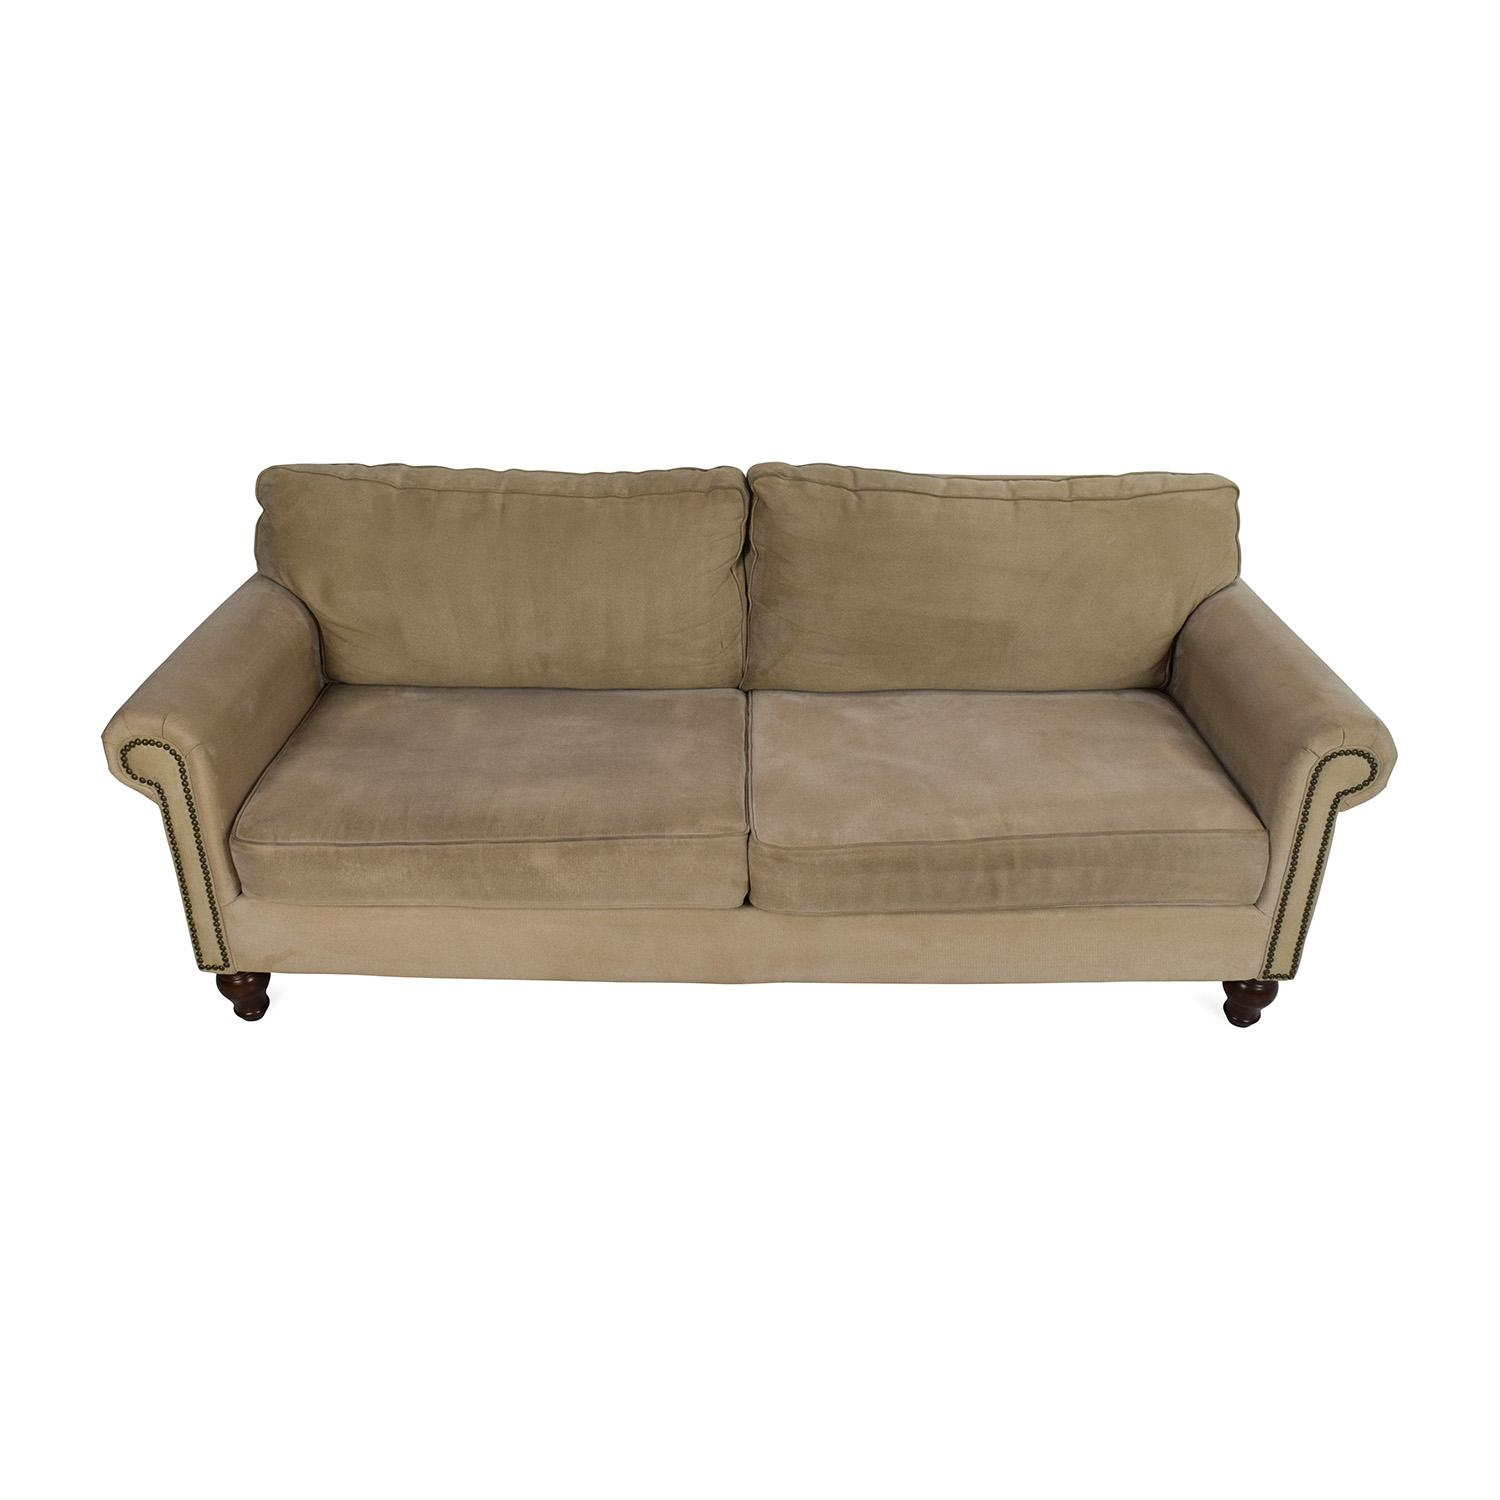 80% Off – Pier 1 Imports Pier 1 Alton Rolled Arm Sofa / Sofas Intended For Pier 1 Sofa Beds (Photo 5 of 20)